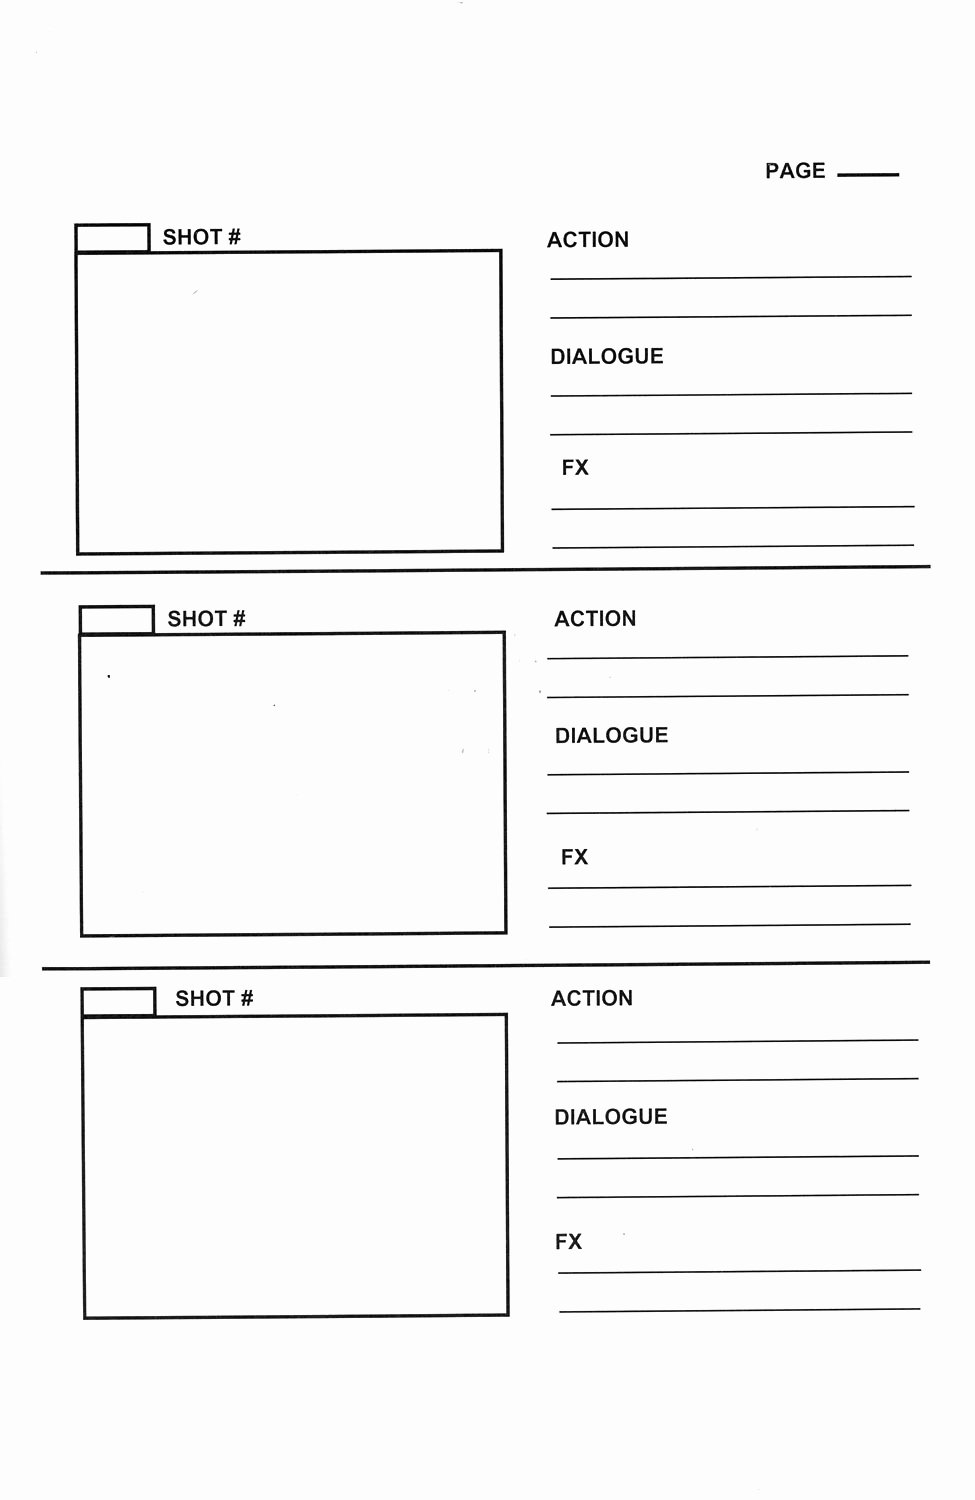 Film Storyboard Template Pdf Unique Storyboard Templates